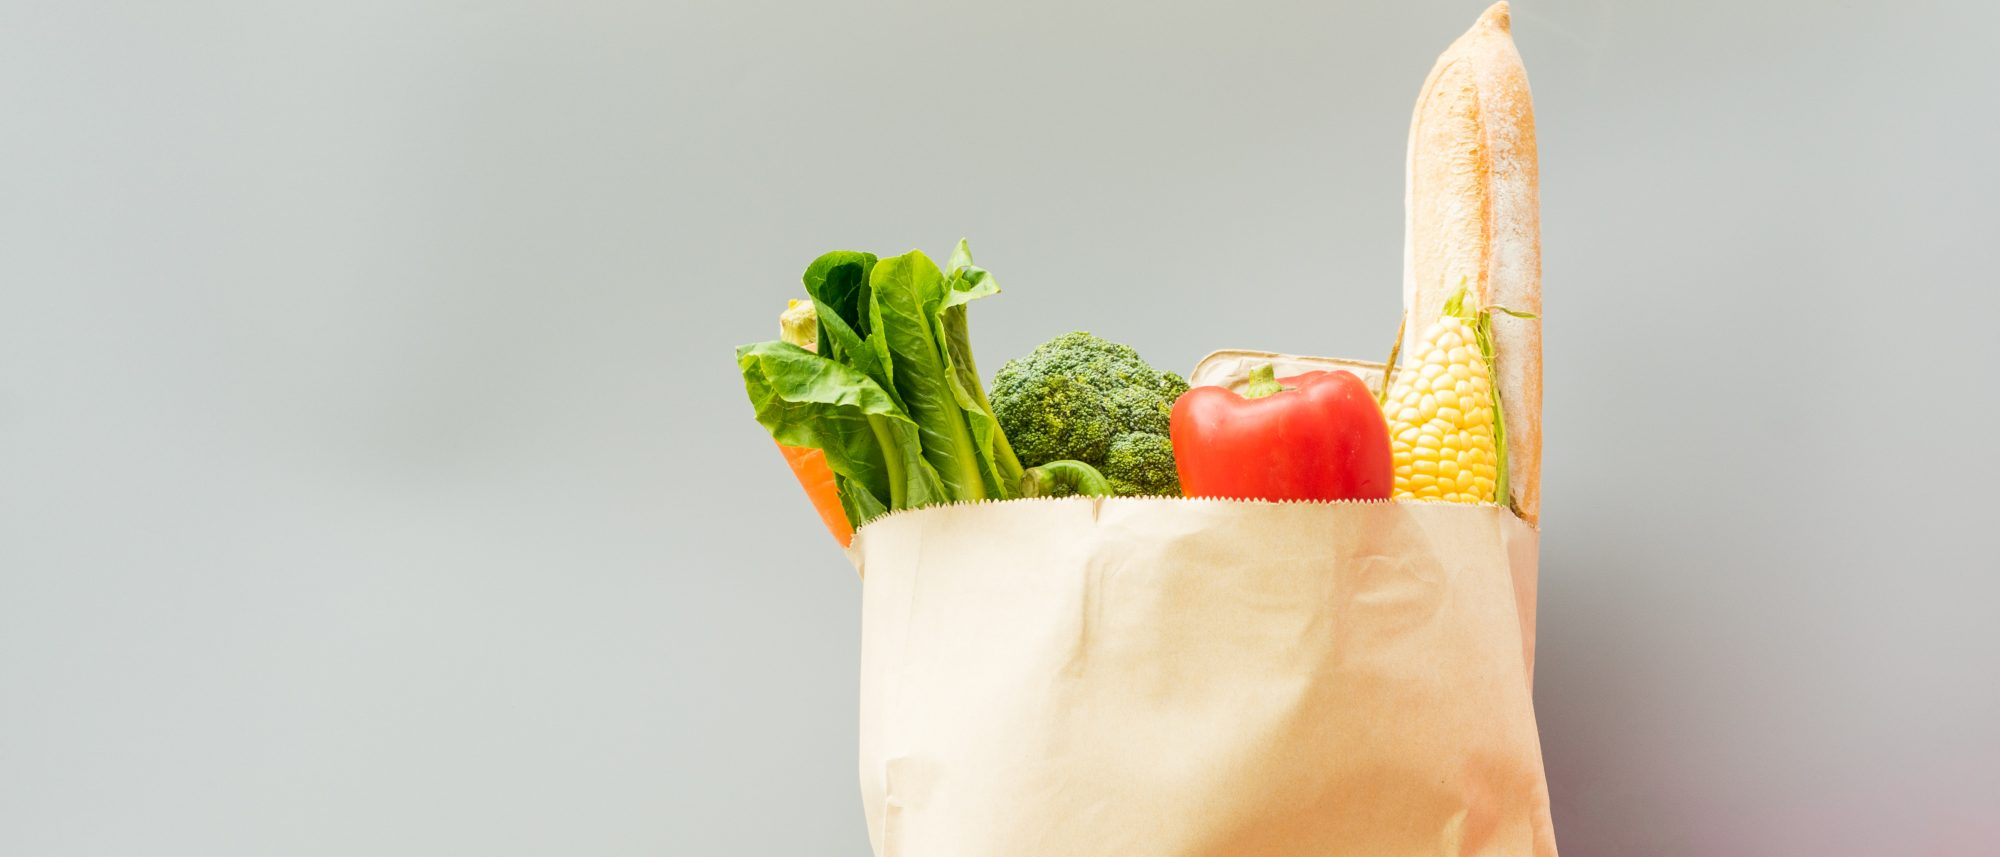 Close up paper bag full of groceries with fresh vegetables and fruit on grey background with copy space. Shopping concept